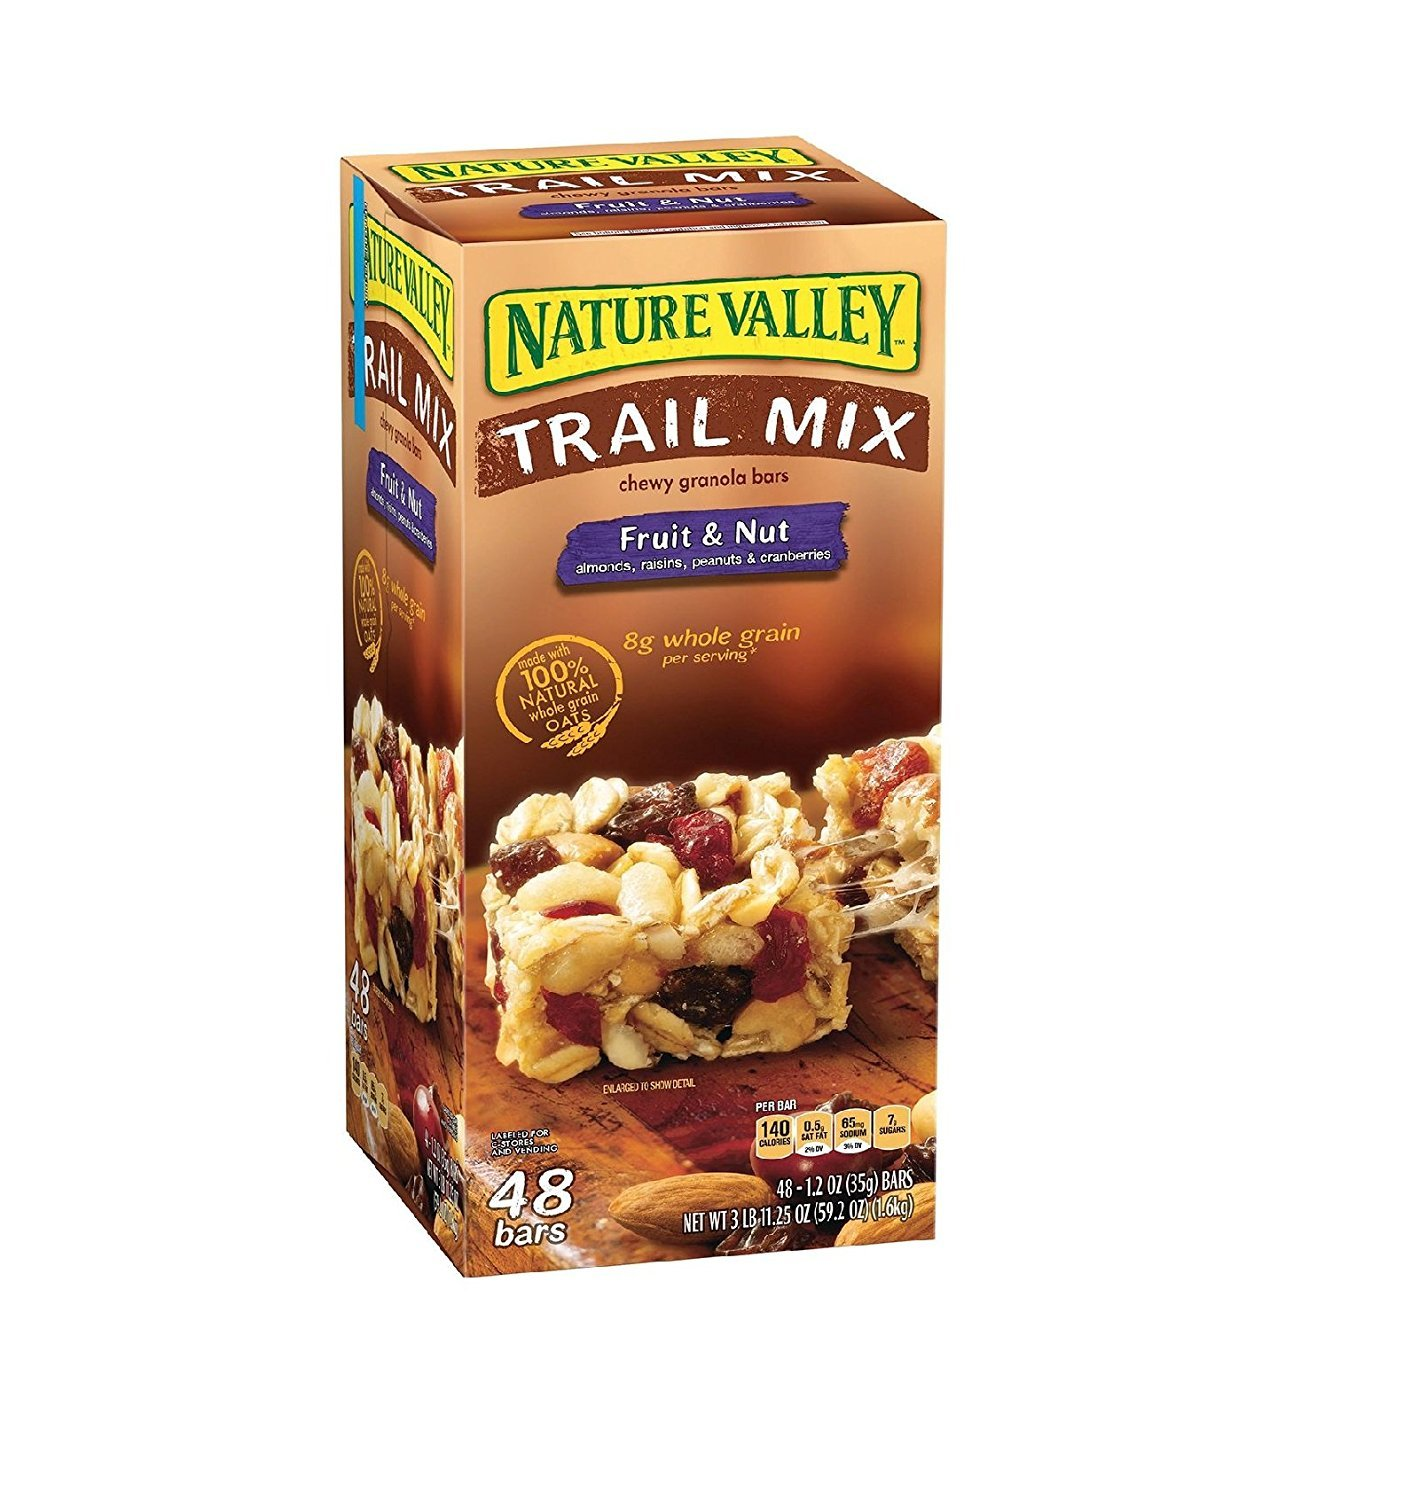 Nature Valley Fruit & Nut Chewy Trail Mix Granola Bars (48 ct.) (2 boxes)